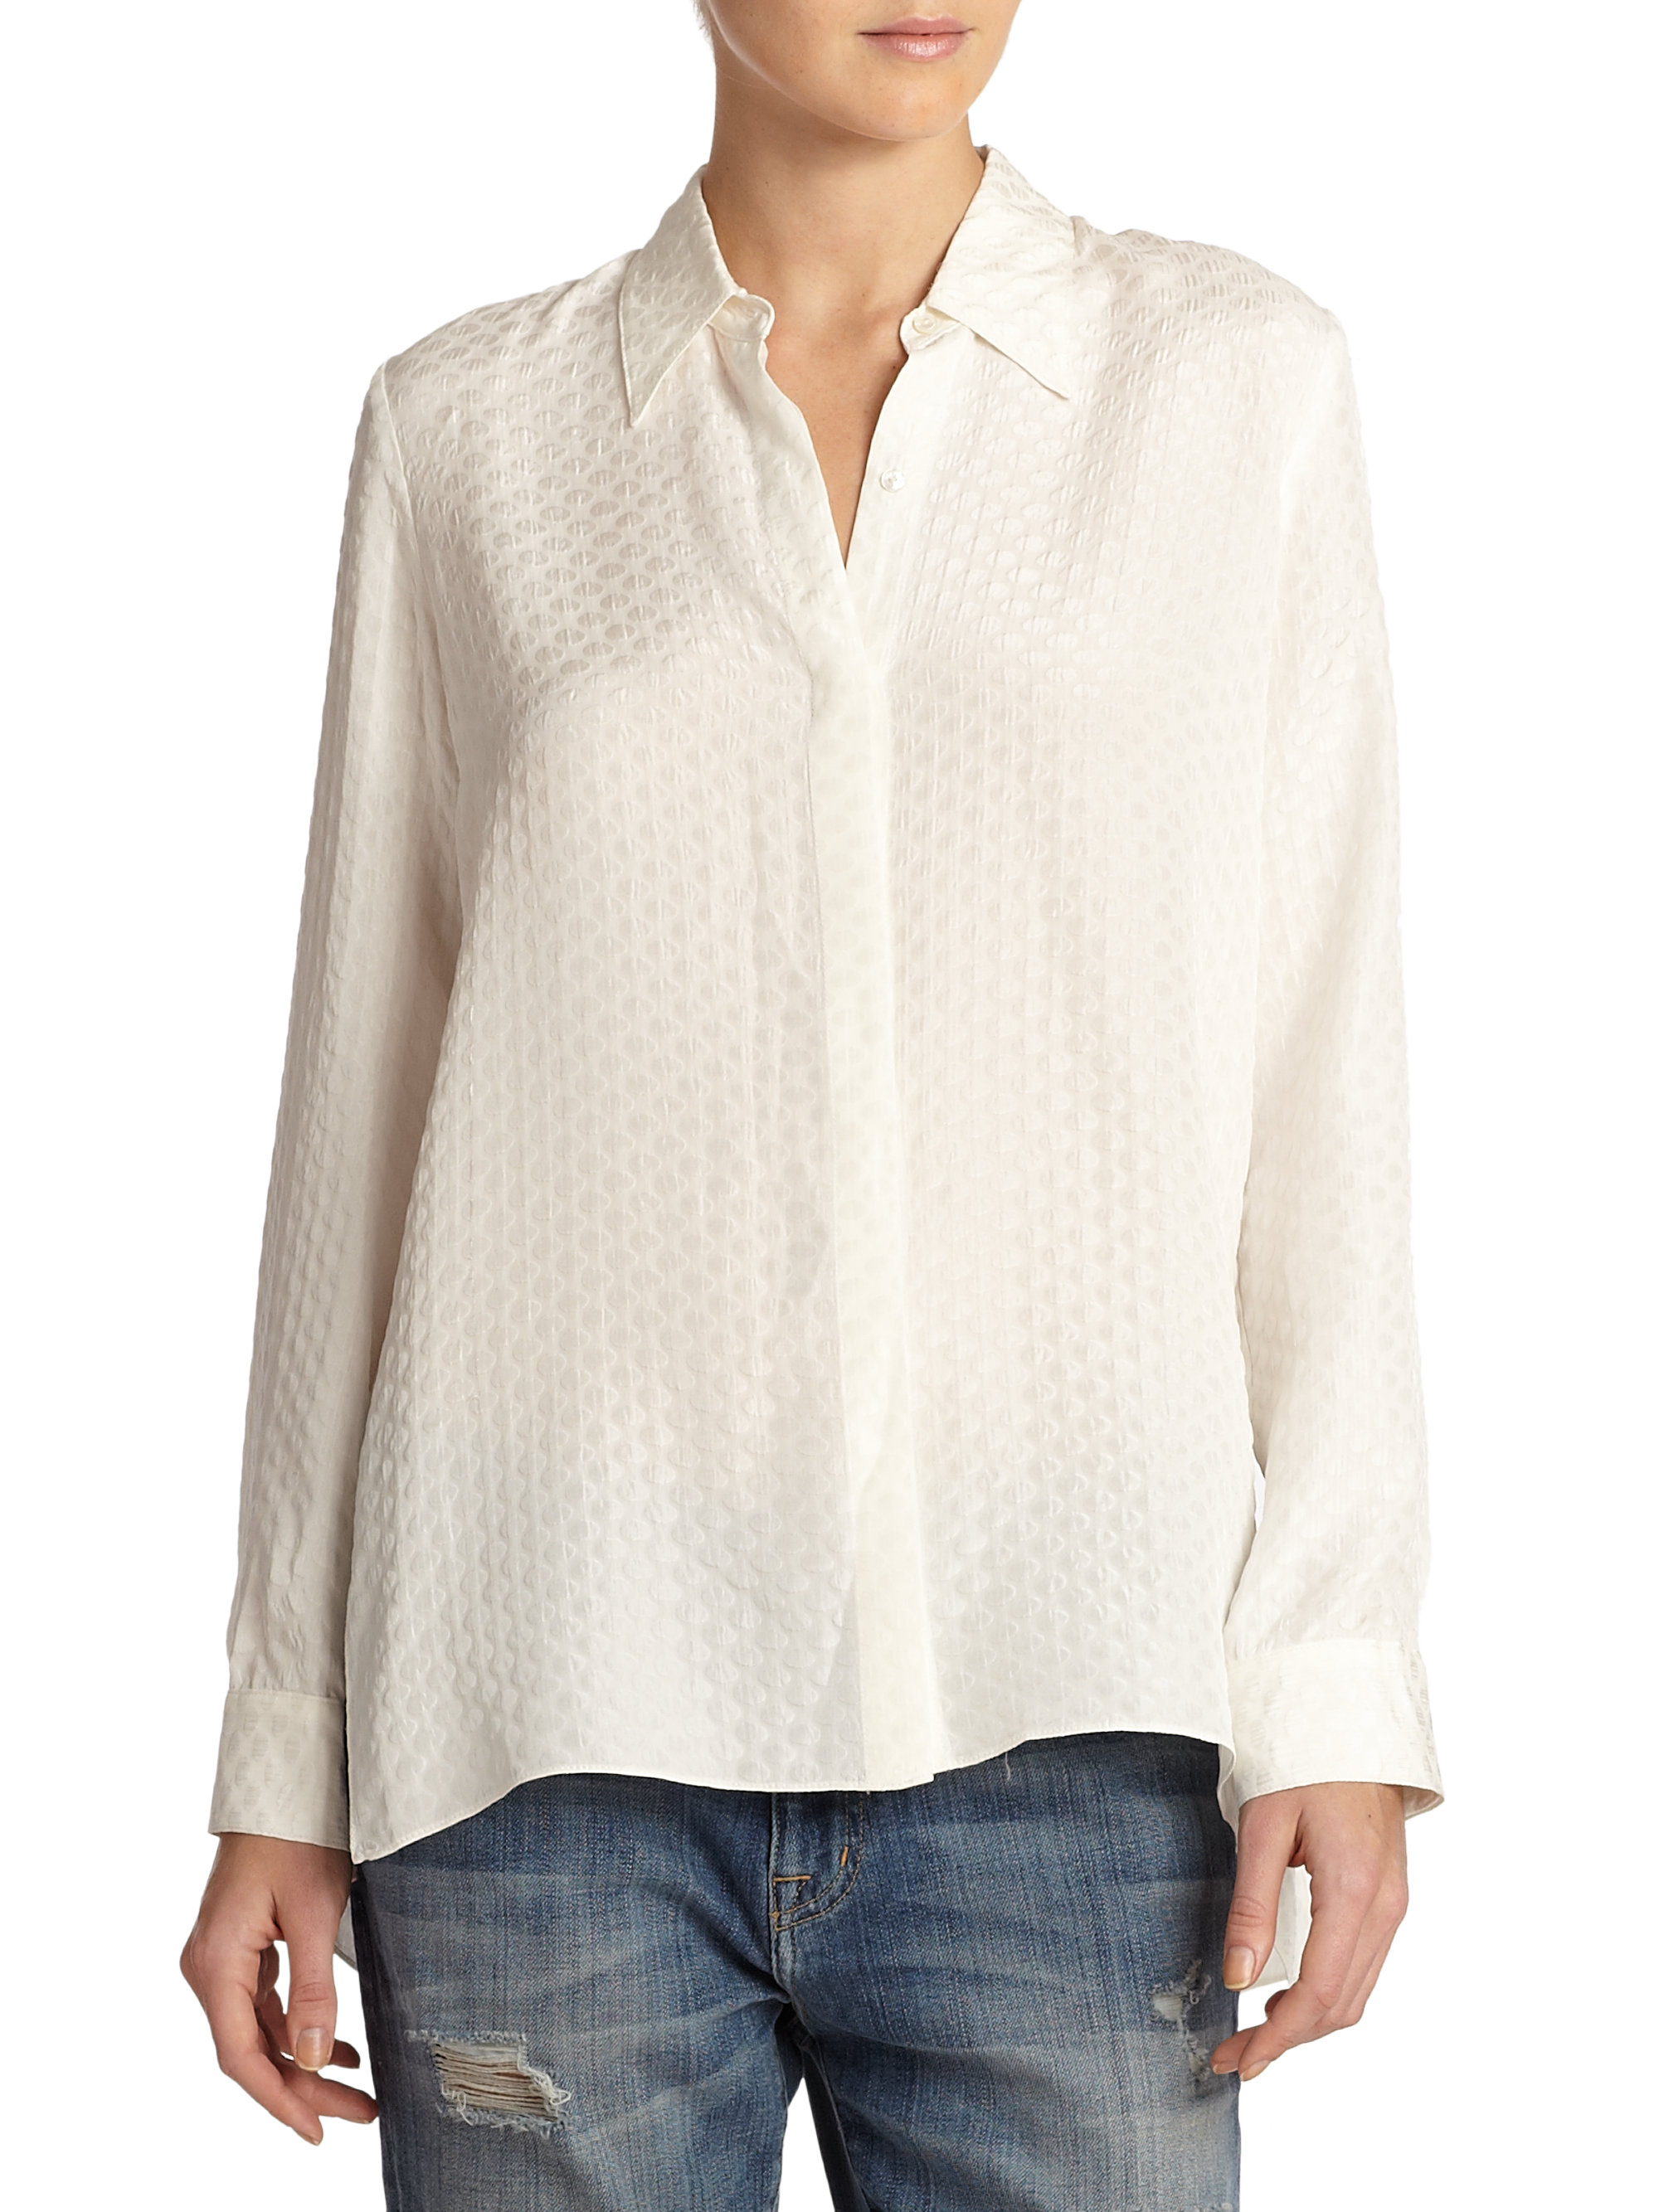 36d00b8074a4f4 Lyst - Elizabeth and James Rollins Jacquard Silk Blouse in White